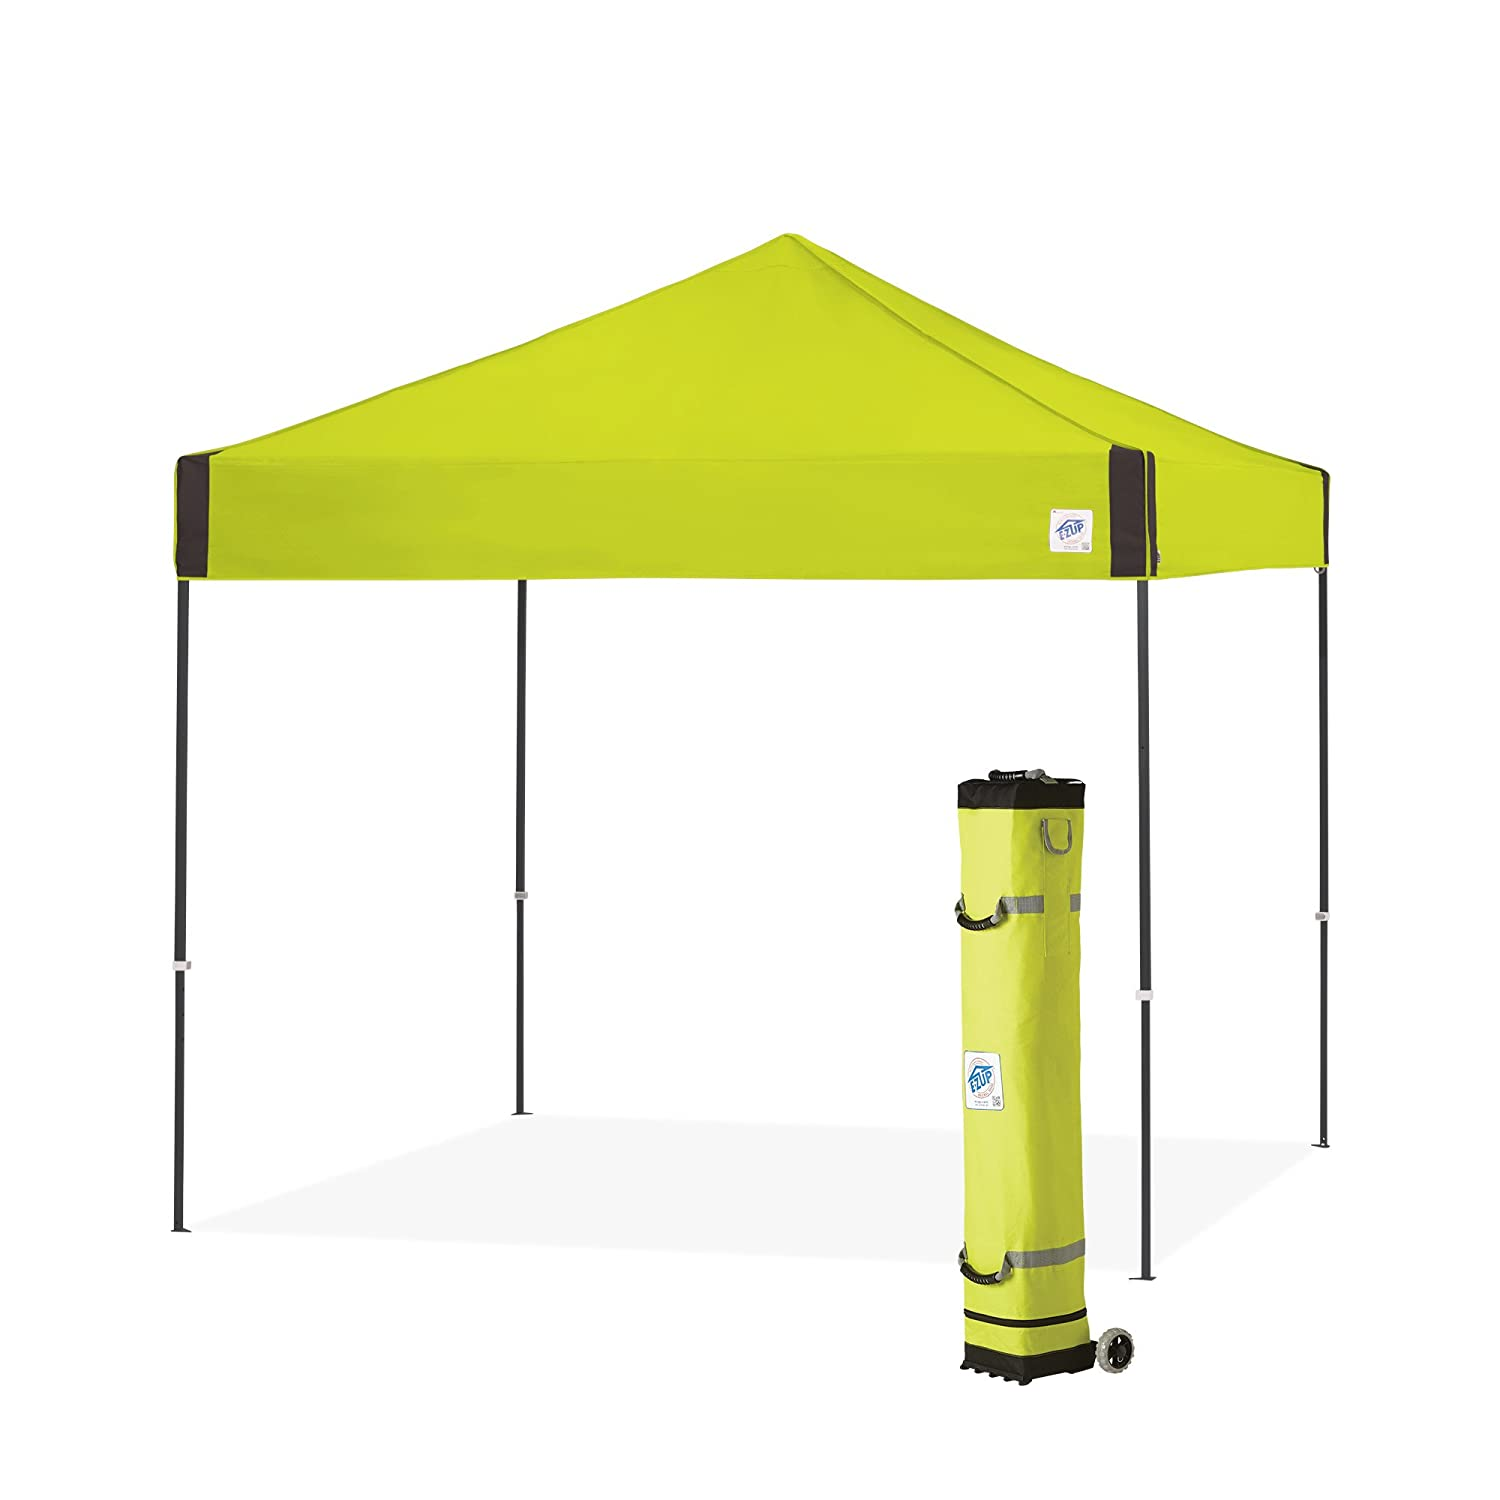 Amazon.com  E-Z UP Pyramid Instant Shelter Canopy 10 by 10u0027 Limeade  Garden u0026 Outdoor  sc 1 st  Amazon.com & Amazon.com : E-Z UP Pyramid Instant Shelter Canopy 10 by 10 ...